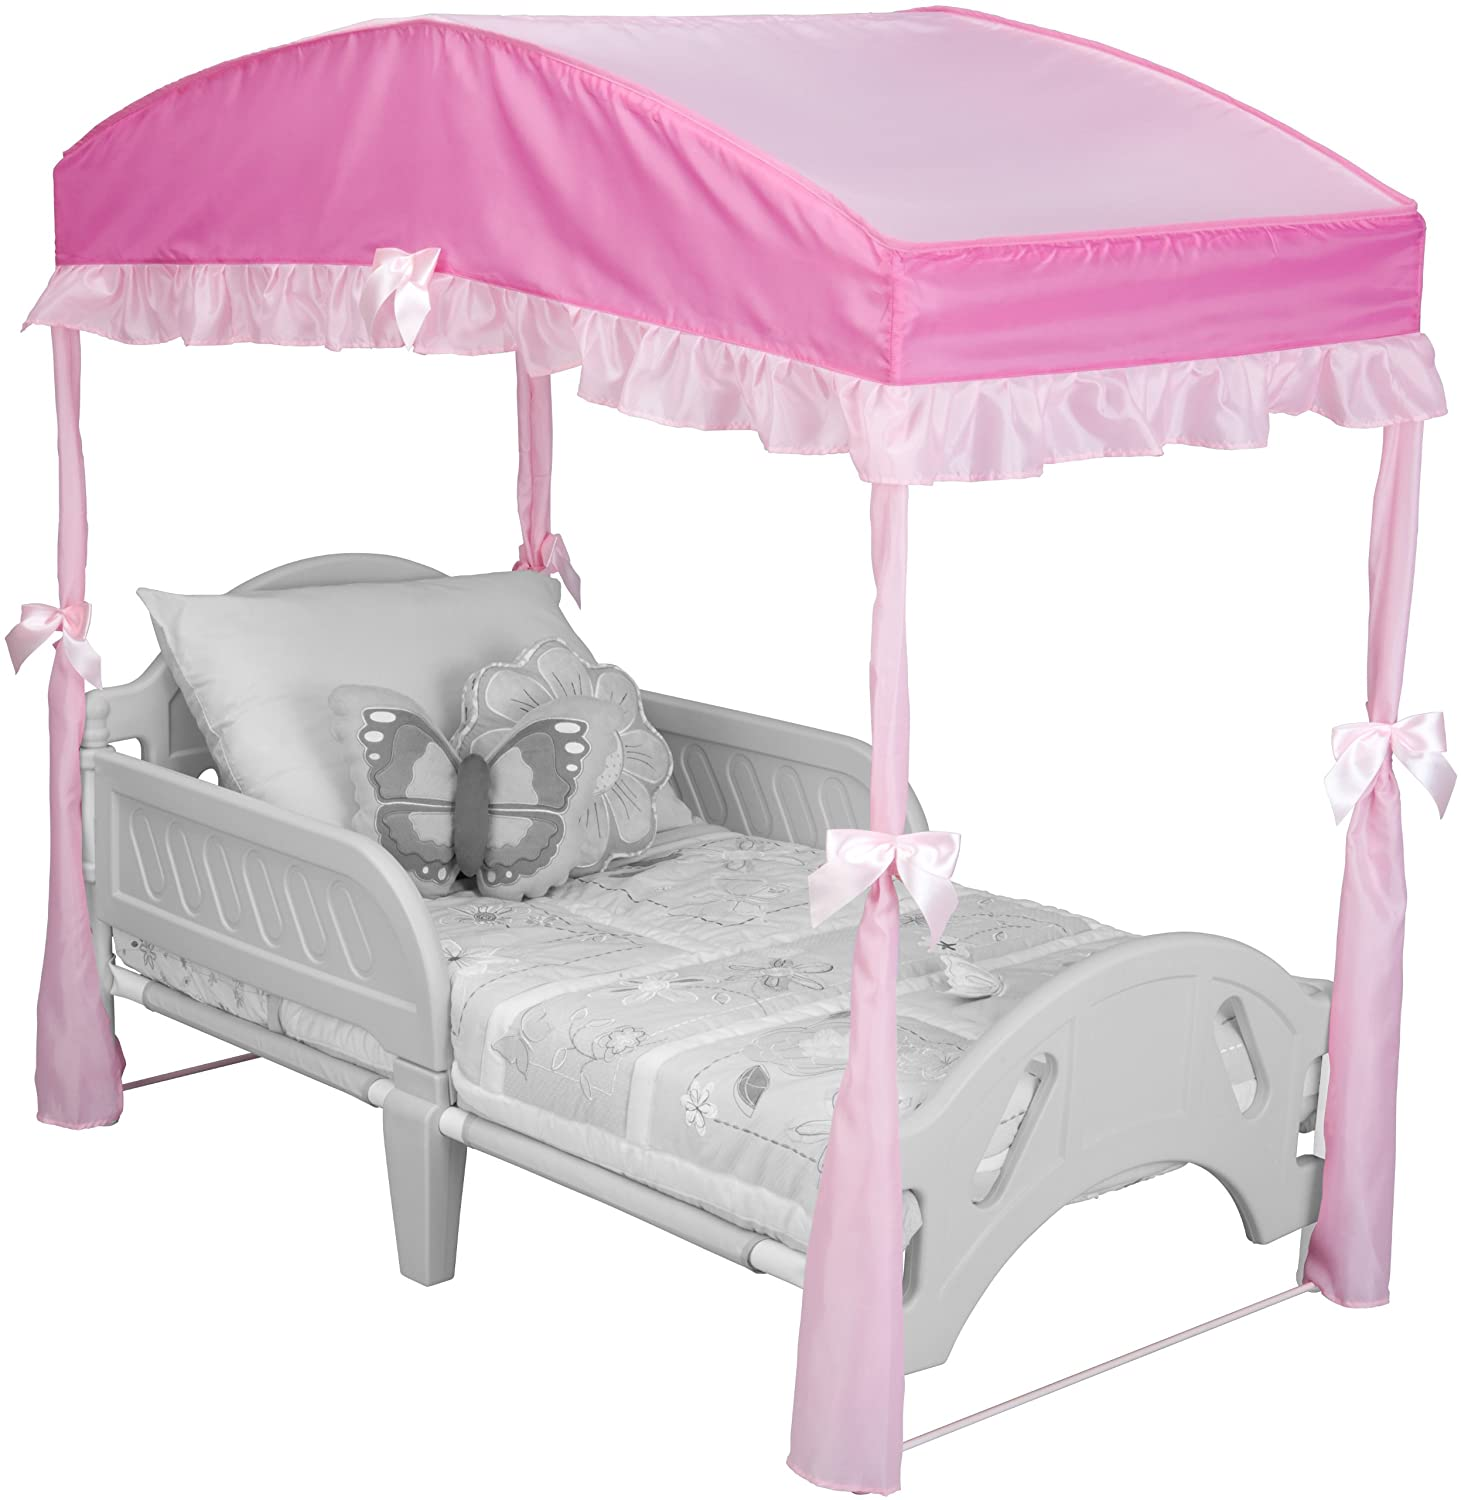 Amazon.com : Delta Children Girls Canopy for Toddler Bed, Pink : Bed Tent  For Toddler Bed : Baby - Amazon.com : Delta Children Girls Canopy For Toddler Bed, Pink